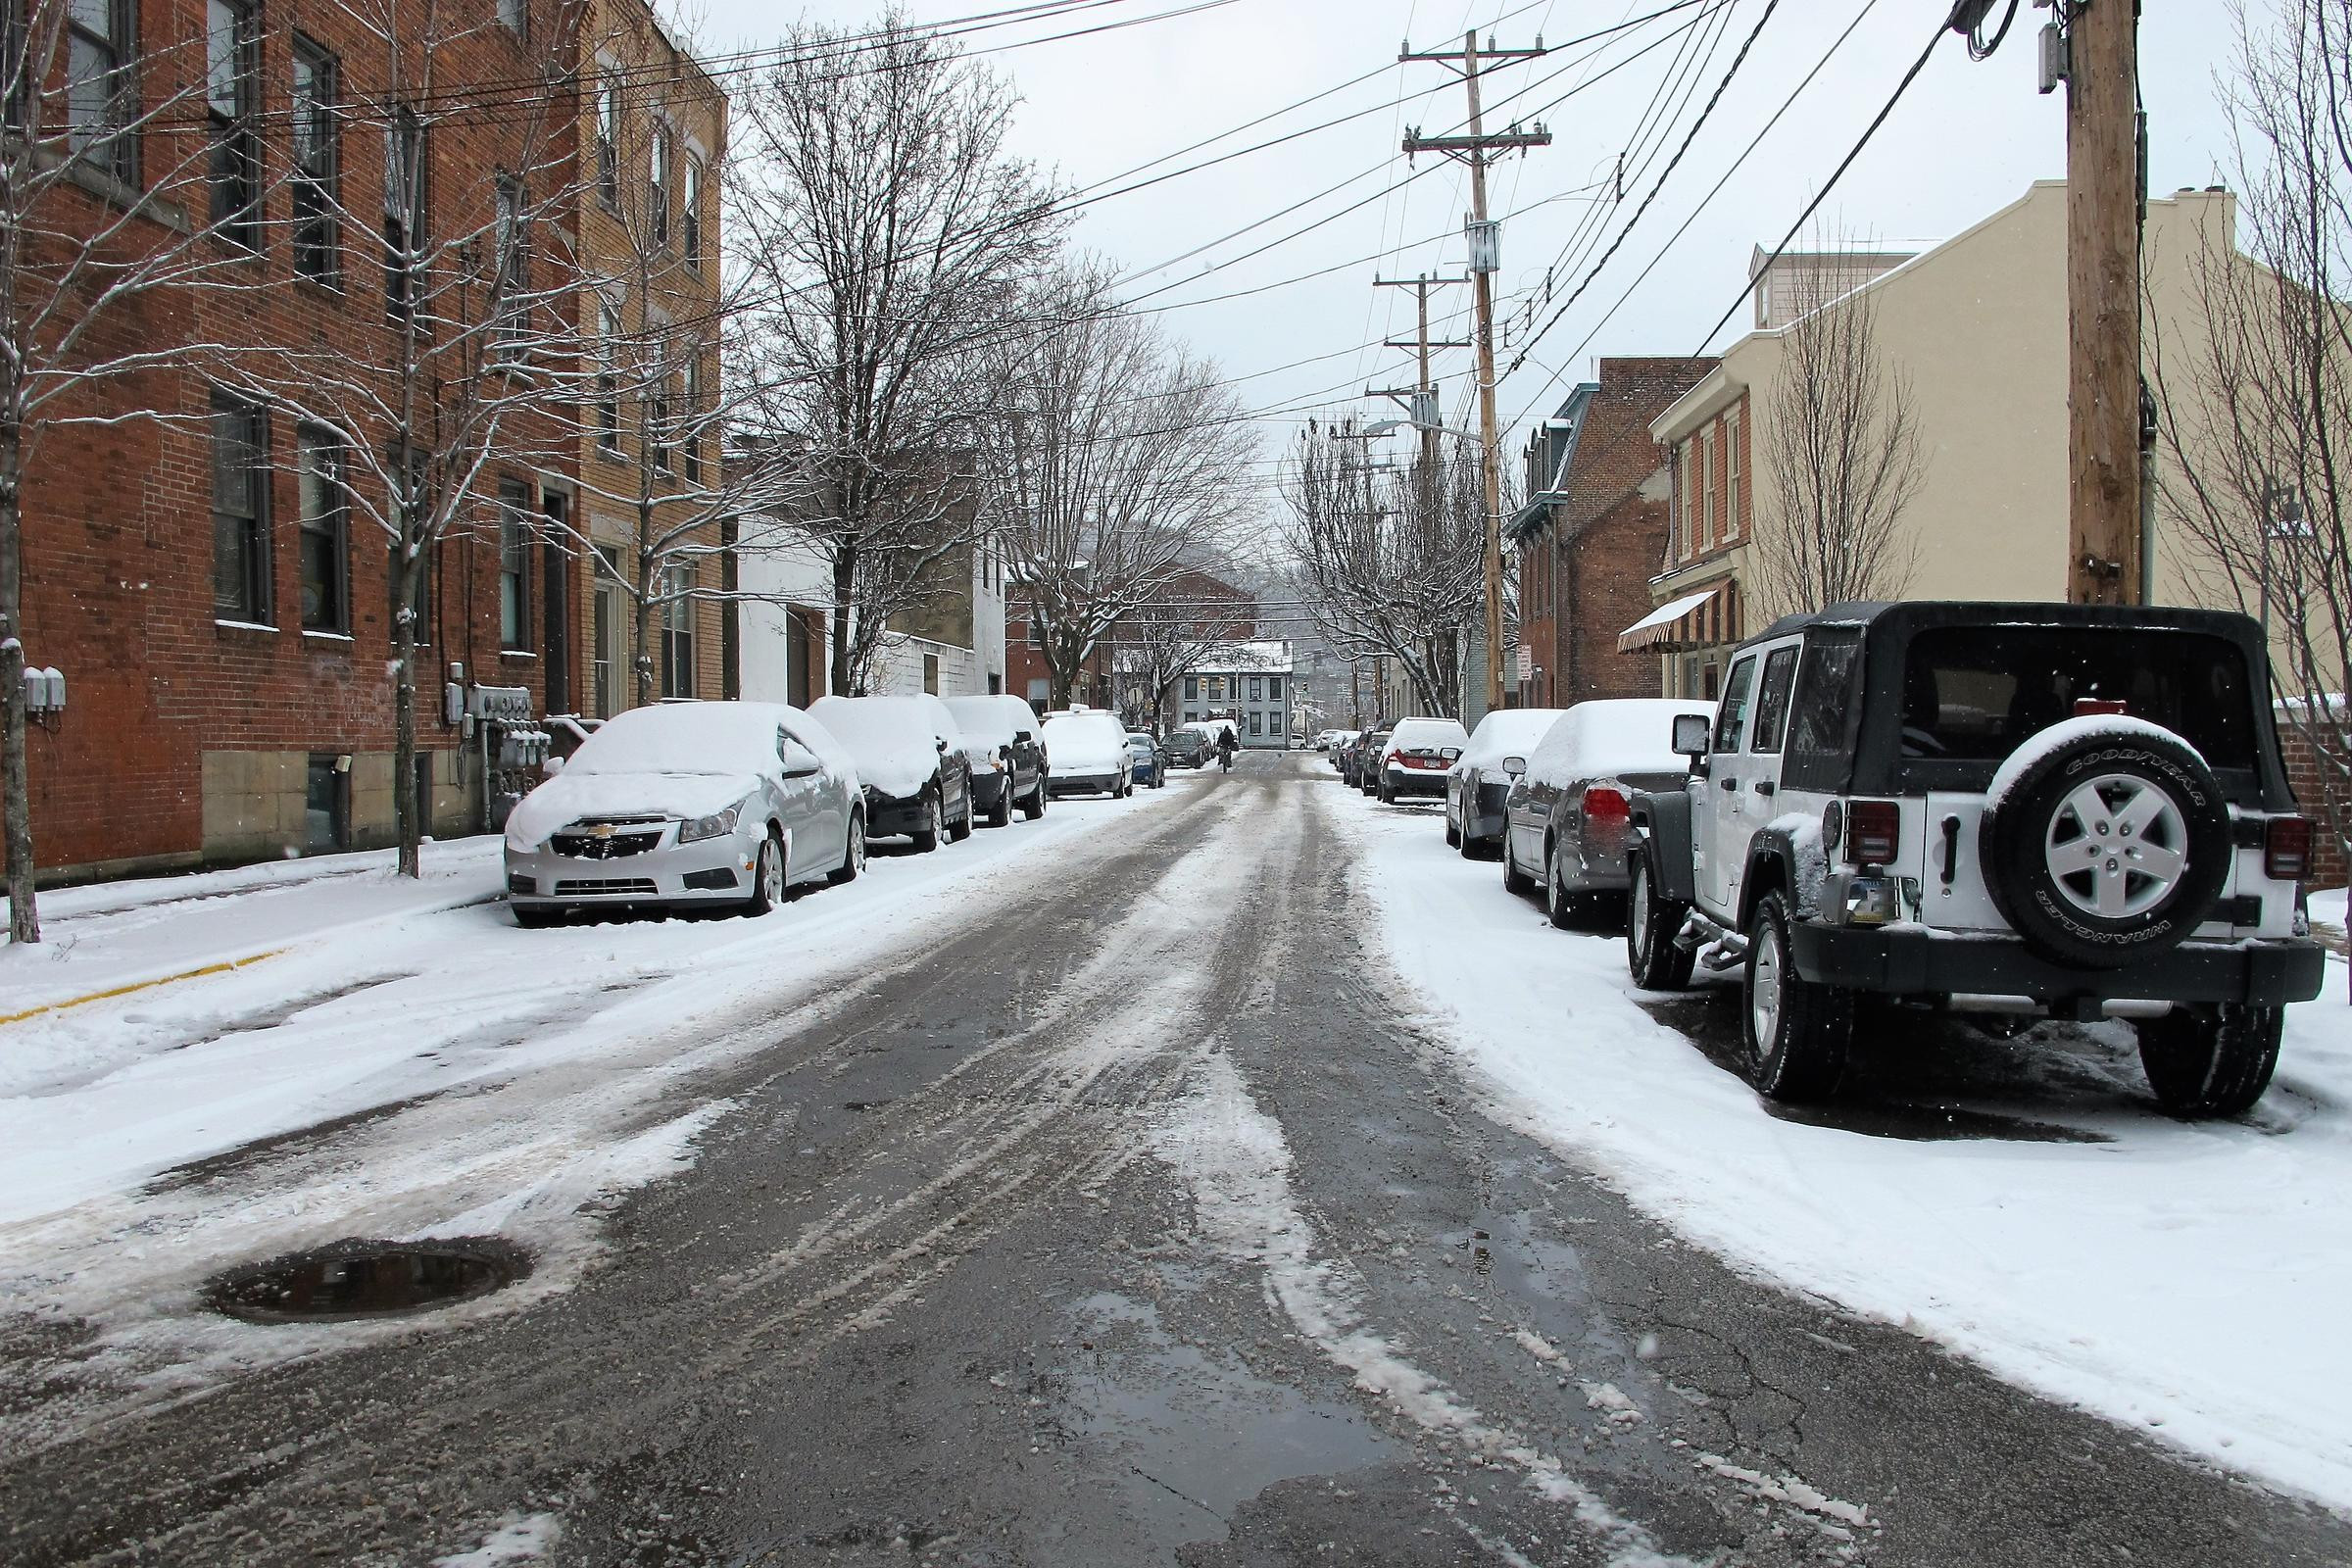 Winter Activities In Pittsburgh  Pittsburgh s Snow Plow Tracker To Return This Month With